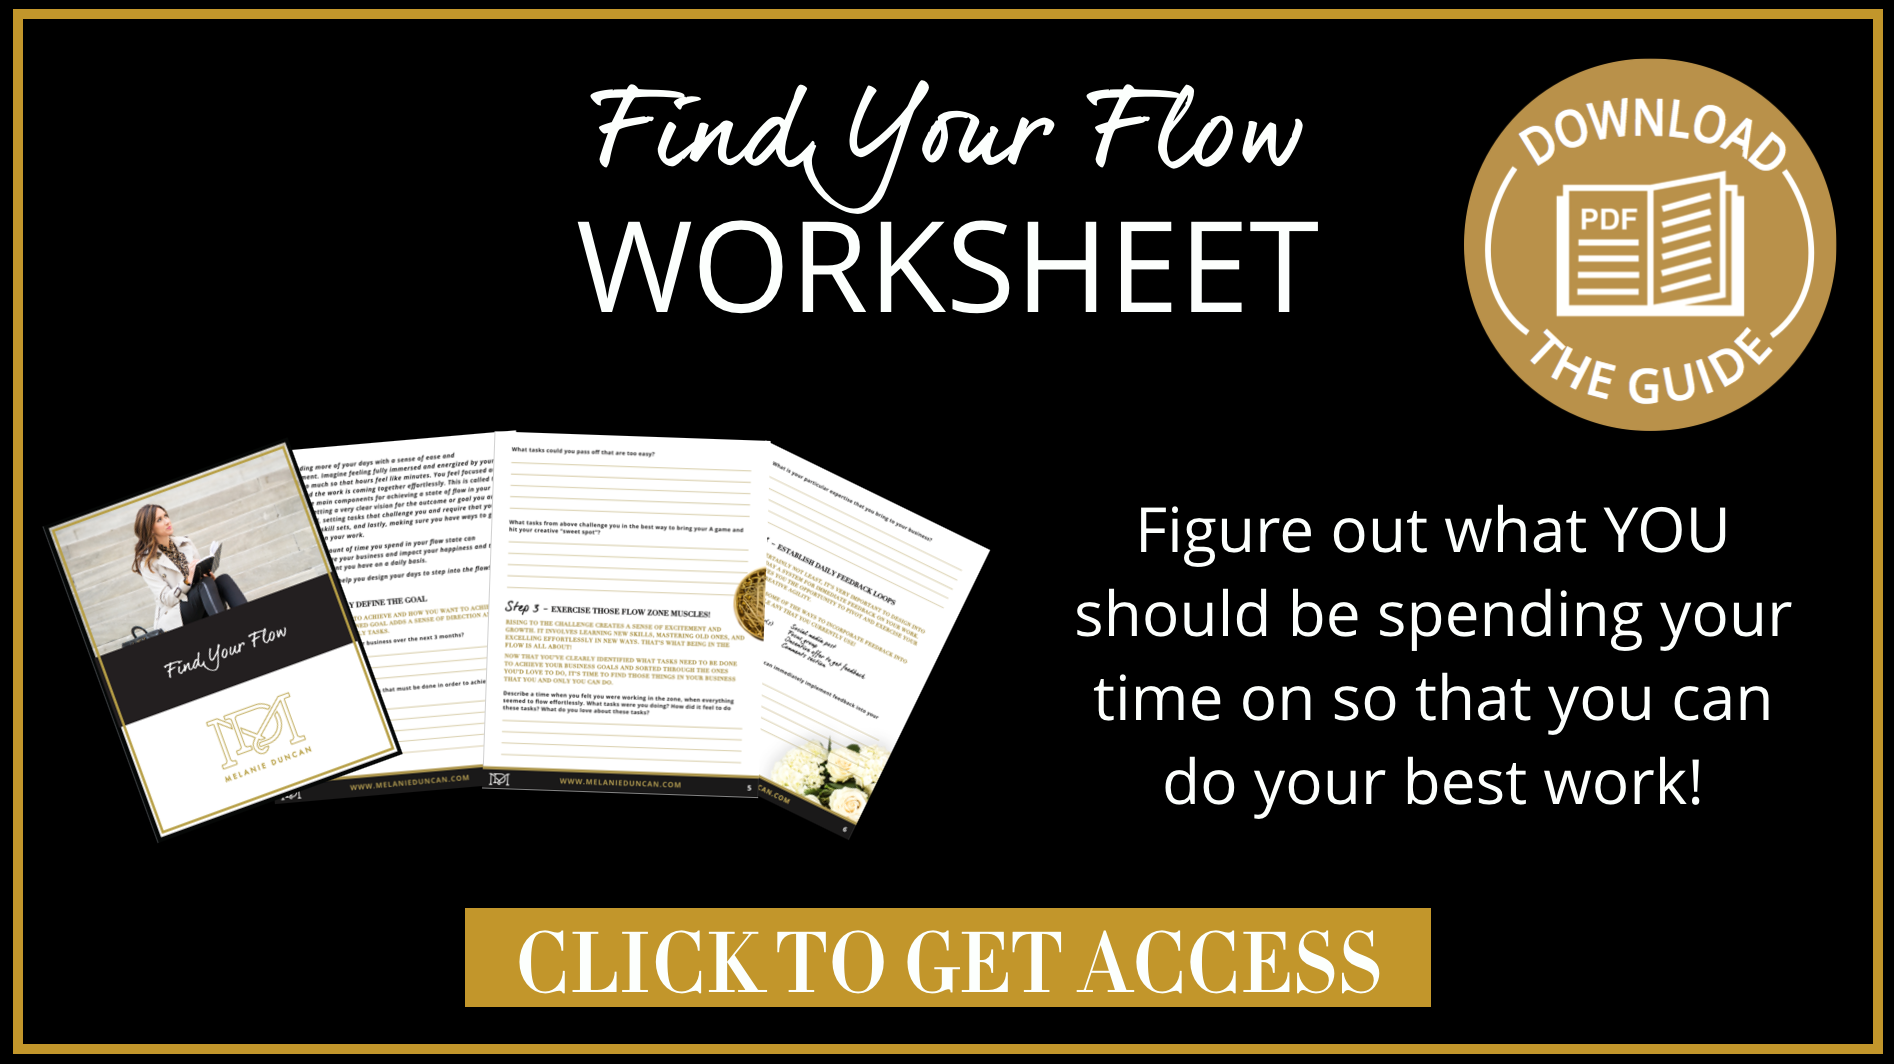 Get Into The Flow 5 ways to find your flow -